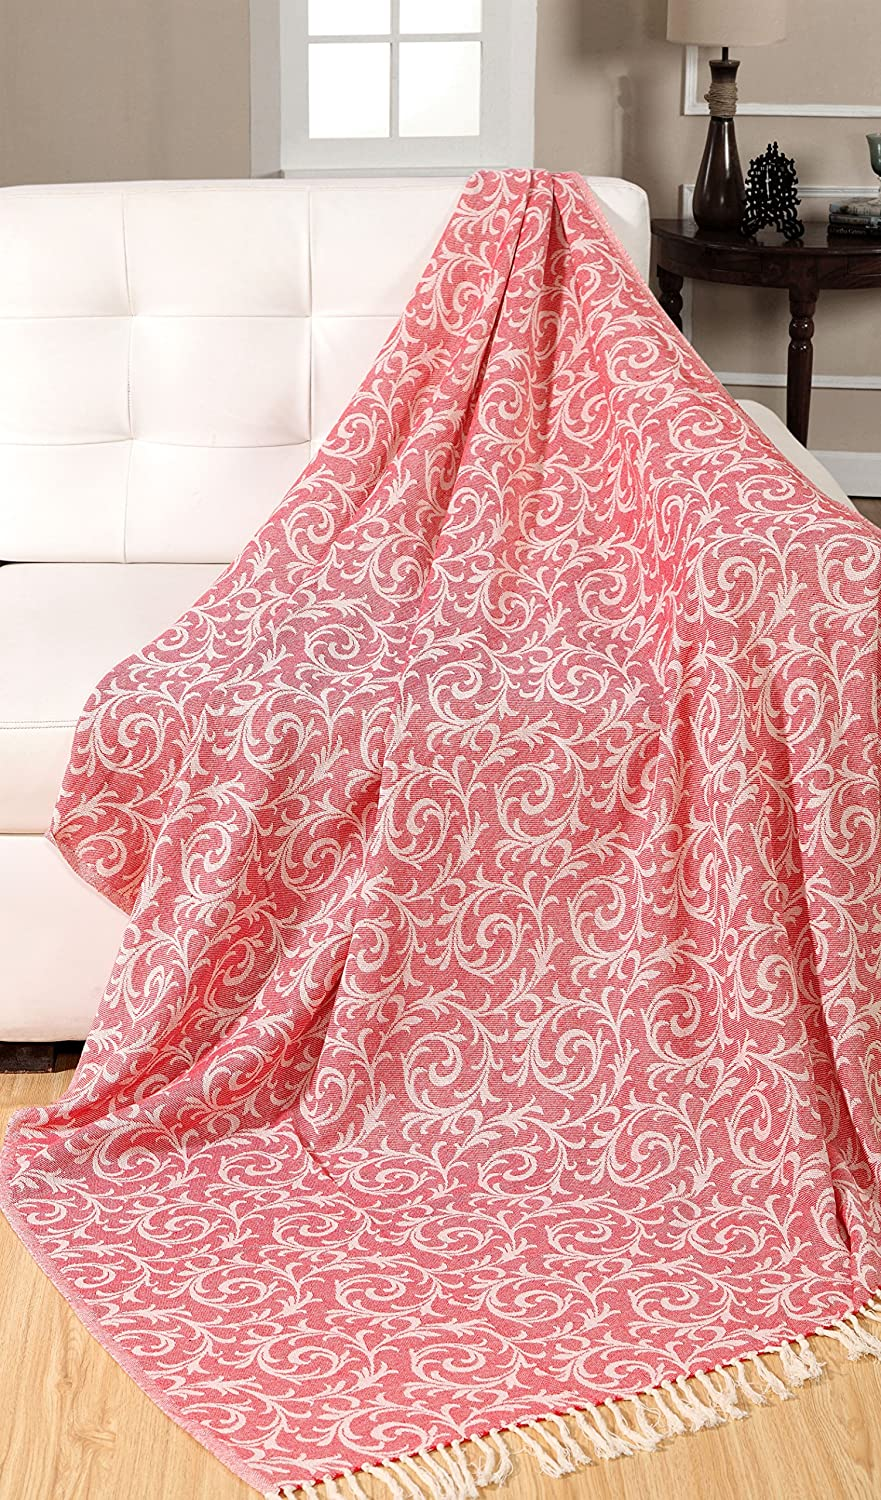 EHC 100% Cotton Vintage Scroll Reversible Soft Throws for Sofa Blanket 125 x 150cms, Red, Single Elite Housewares E9-SCROLL1215RE